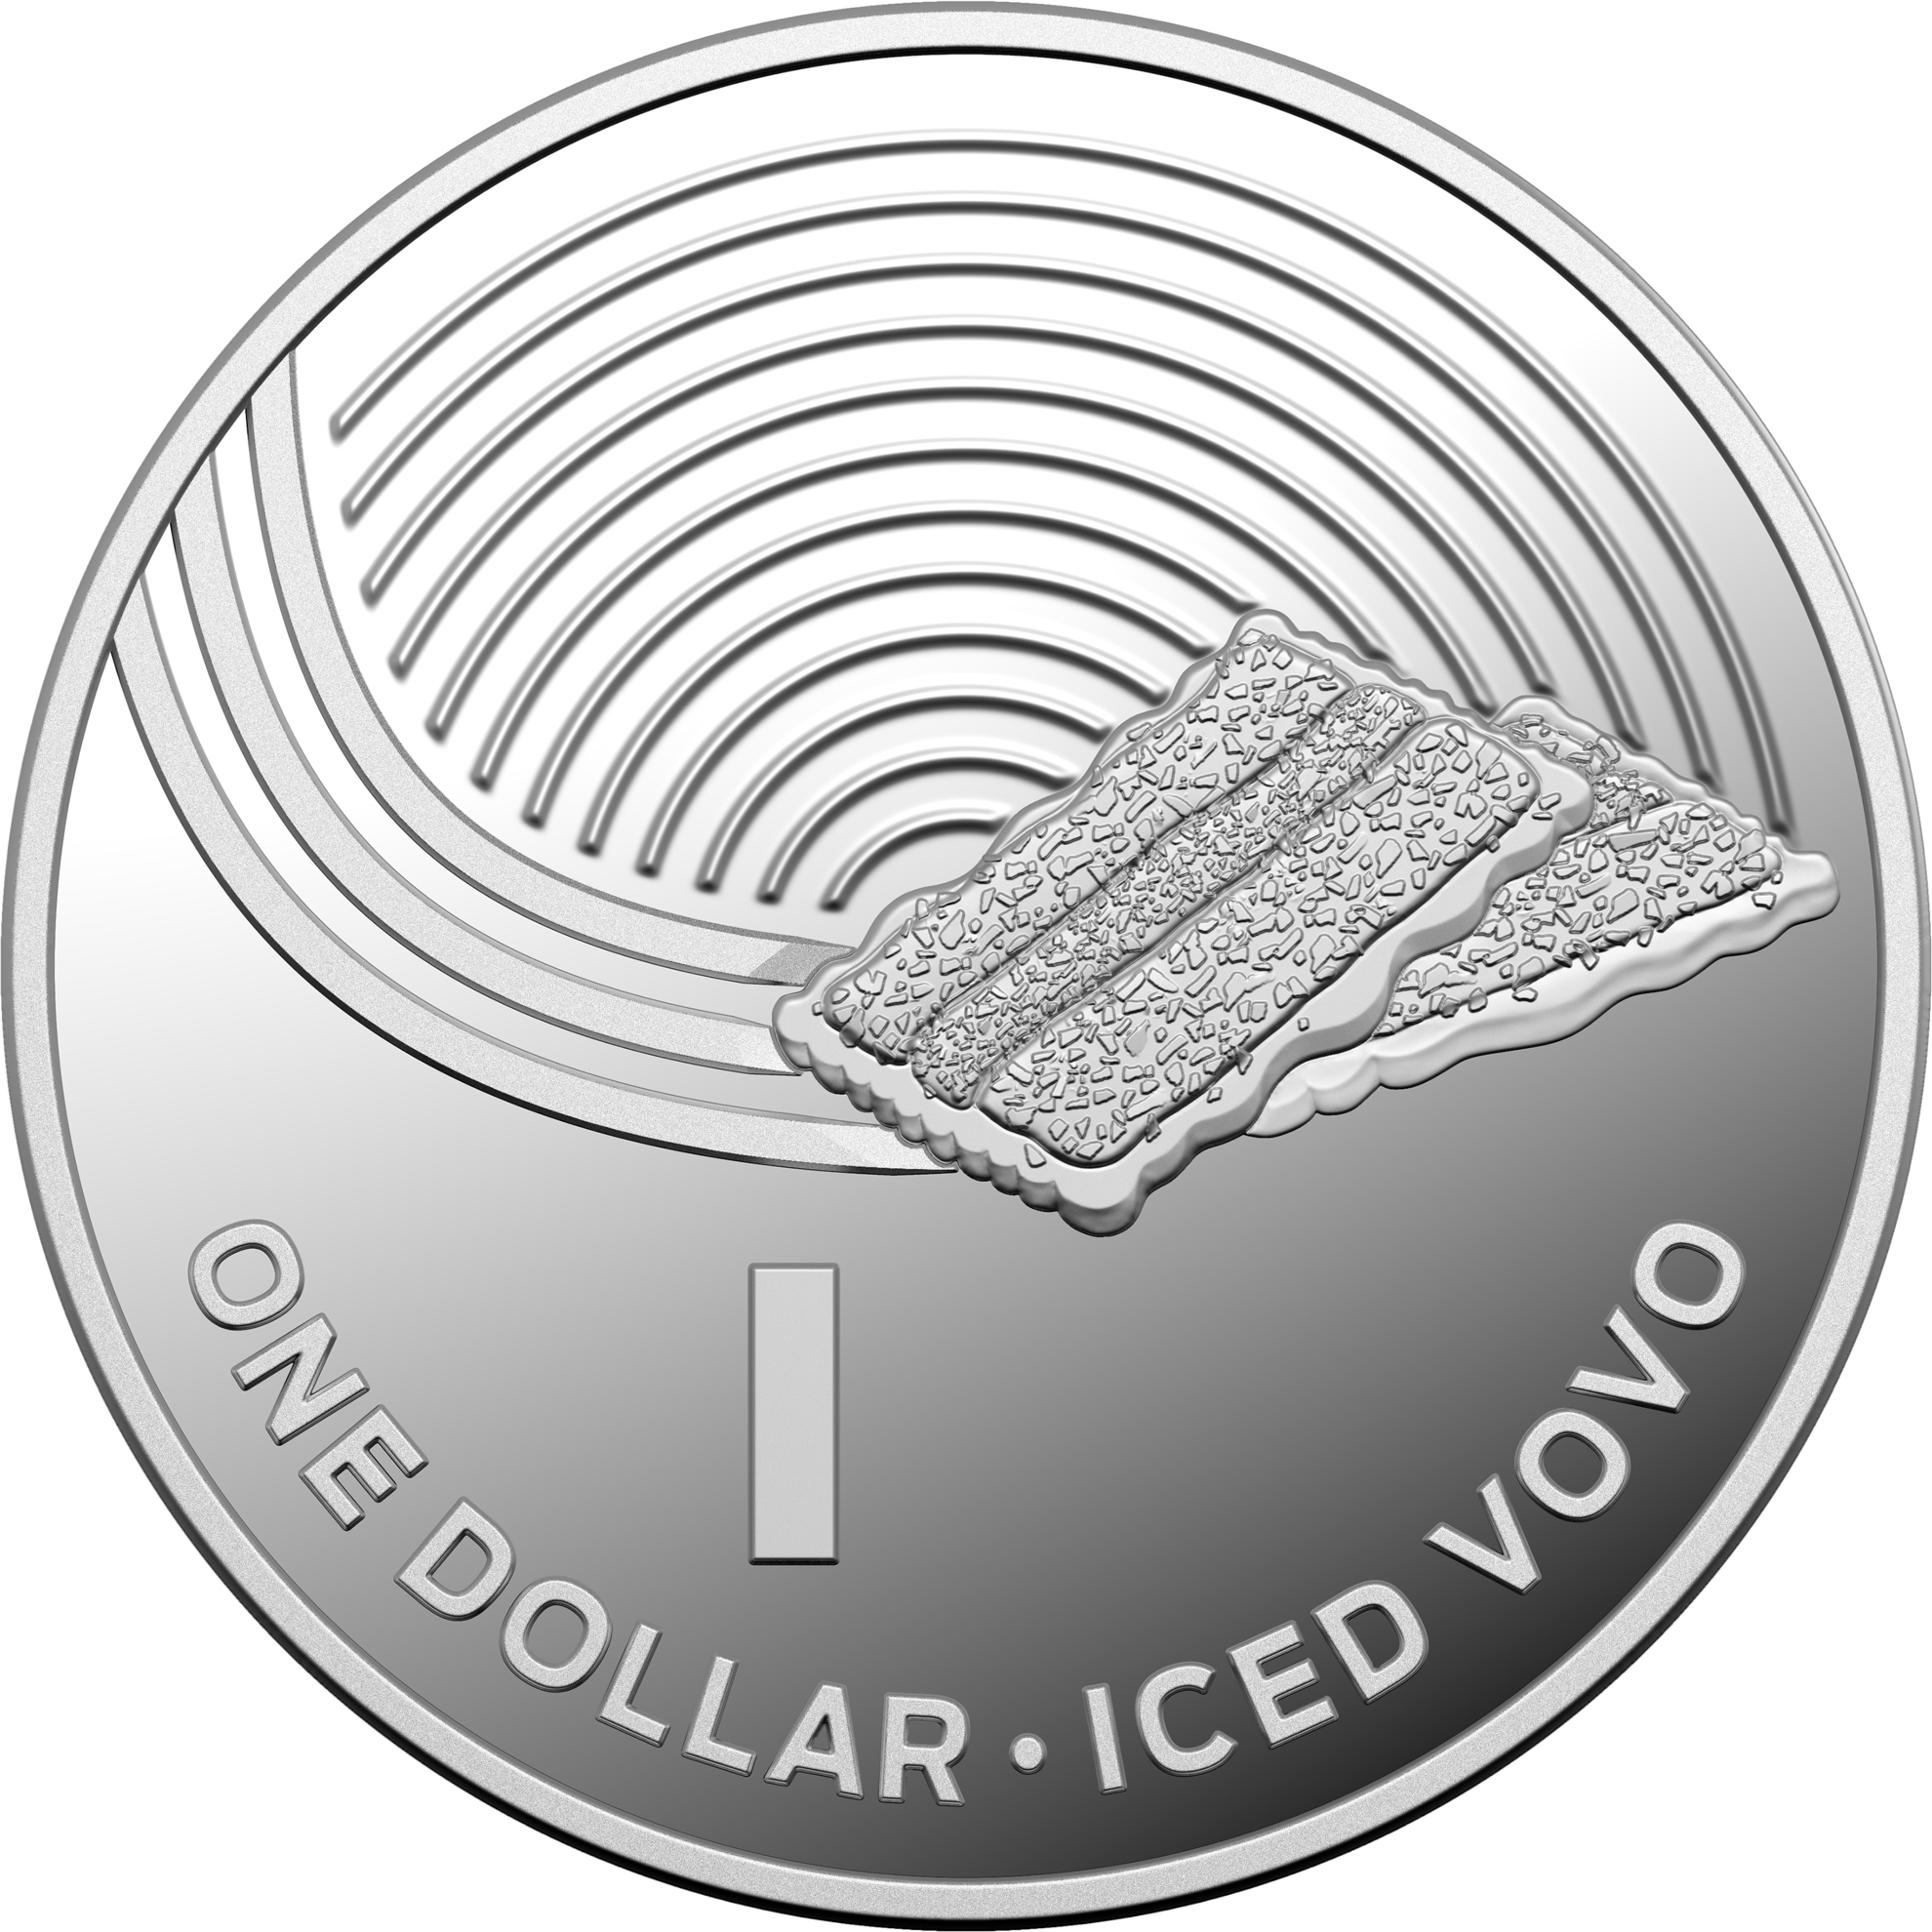 One Dollar 2019 I - Iced Vovo: Photo 2019 $1 Silver Proof Coin Collection - Iced Vovo